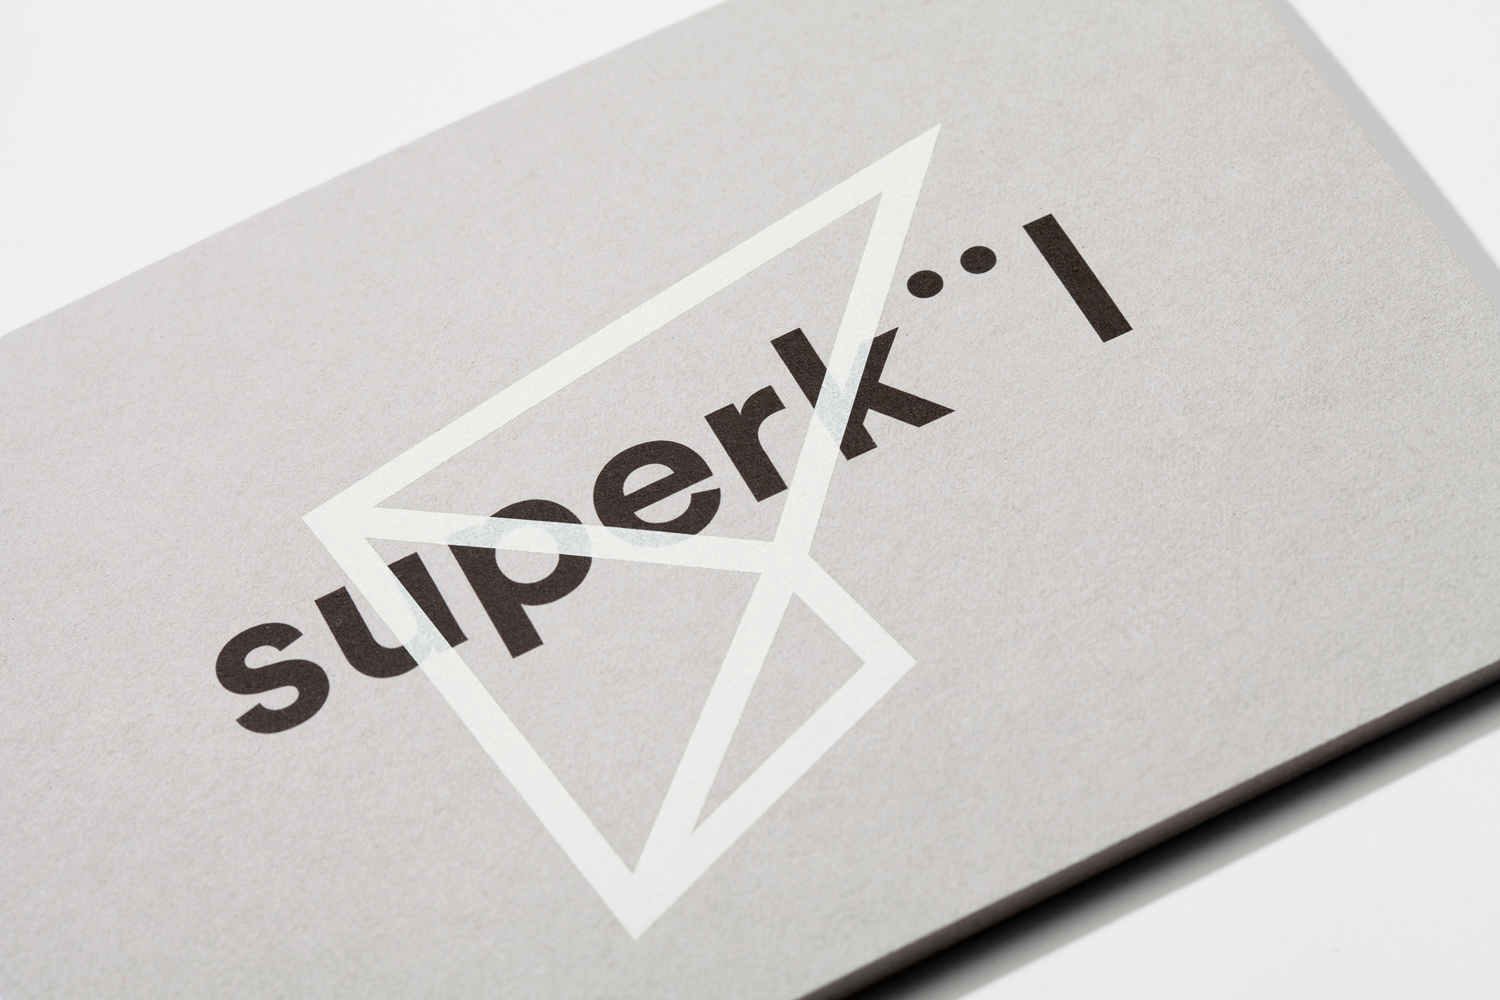 Brand identity and notecard by Toronto-based graphic design studio Blok for Canadian architecture firm Superkül